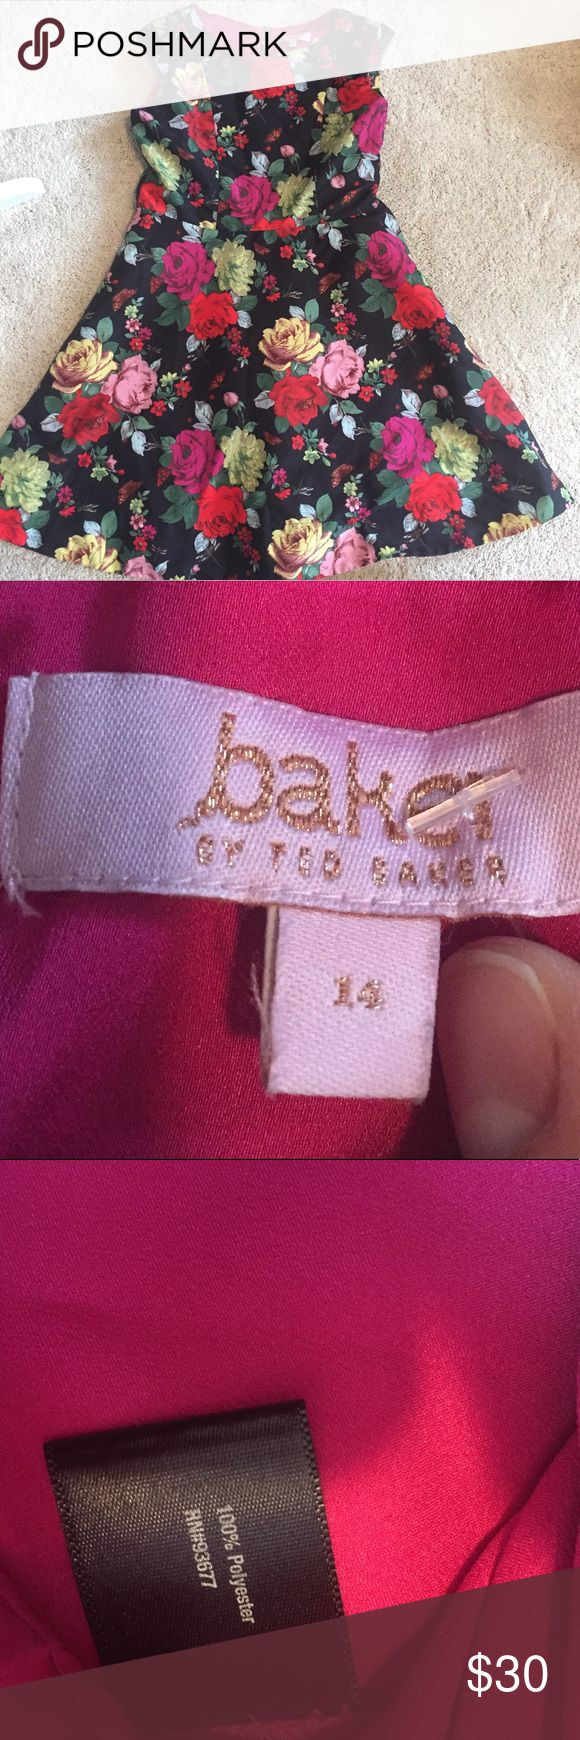 Baker by Ted baker dress Cute little spring/ summer children's dress by baker by Ted baker.  She will look like such a put together young lady in this dress! Baker by Ted Baker Dresses